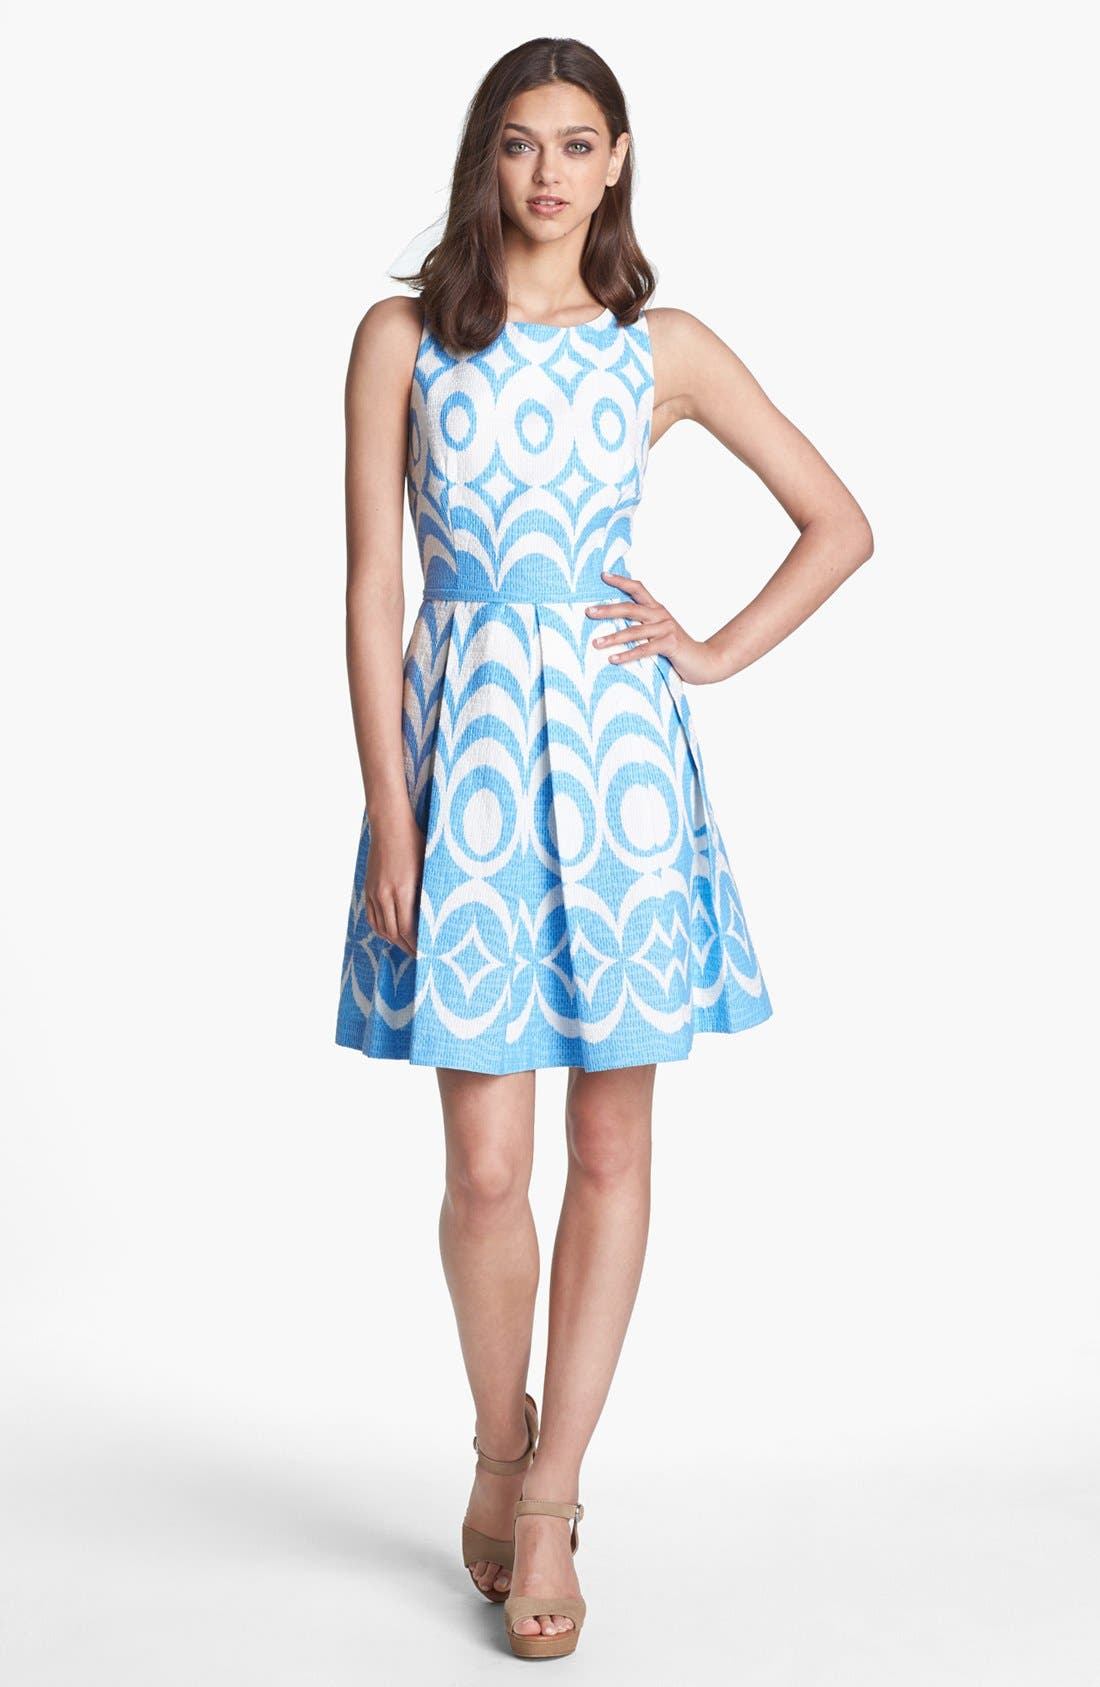 Alternate Image 1 Selected - Taylor Dresses Print Sleeveless Fit & Flare Dress